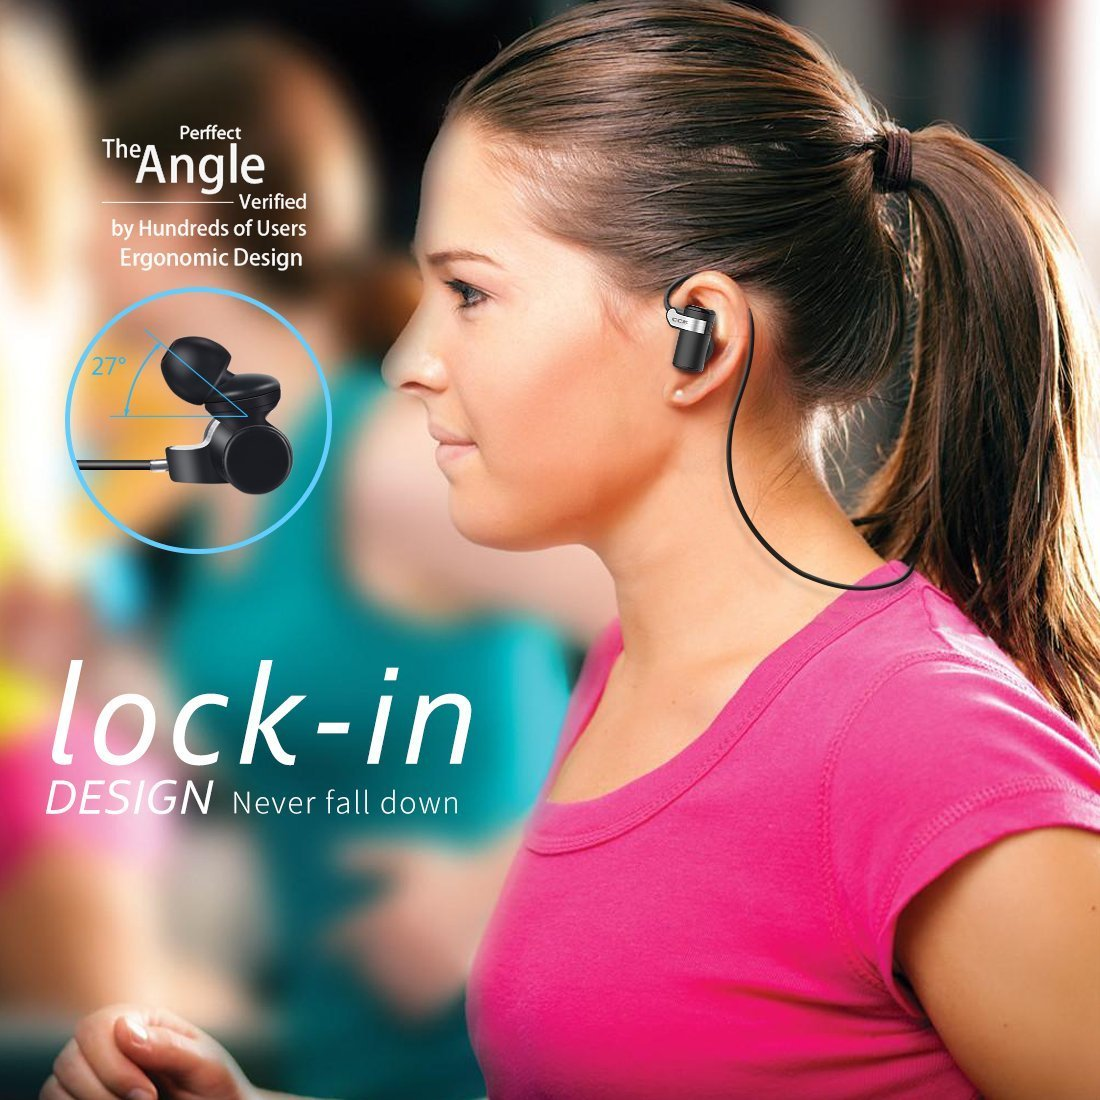 Bluetooth Headphones CCK Wireless Earbuds Sports Best Running Earphones Hi-Fi Stereo Noise Cancelling Sweatproof for Gym Workout Exercising Fashionable In Ear Headsets Computer iphone Android Black